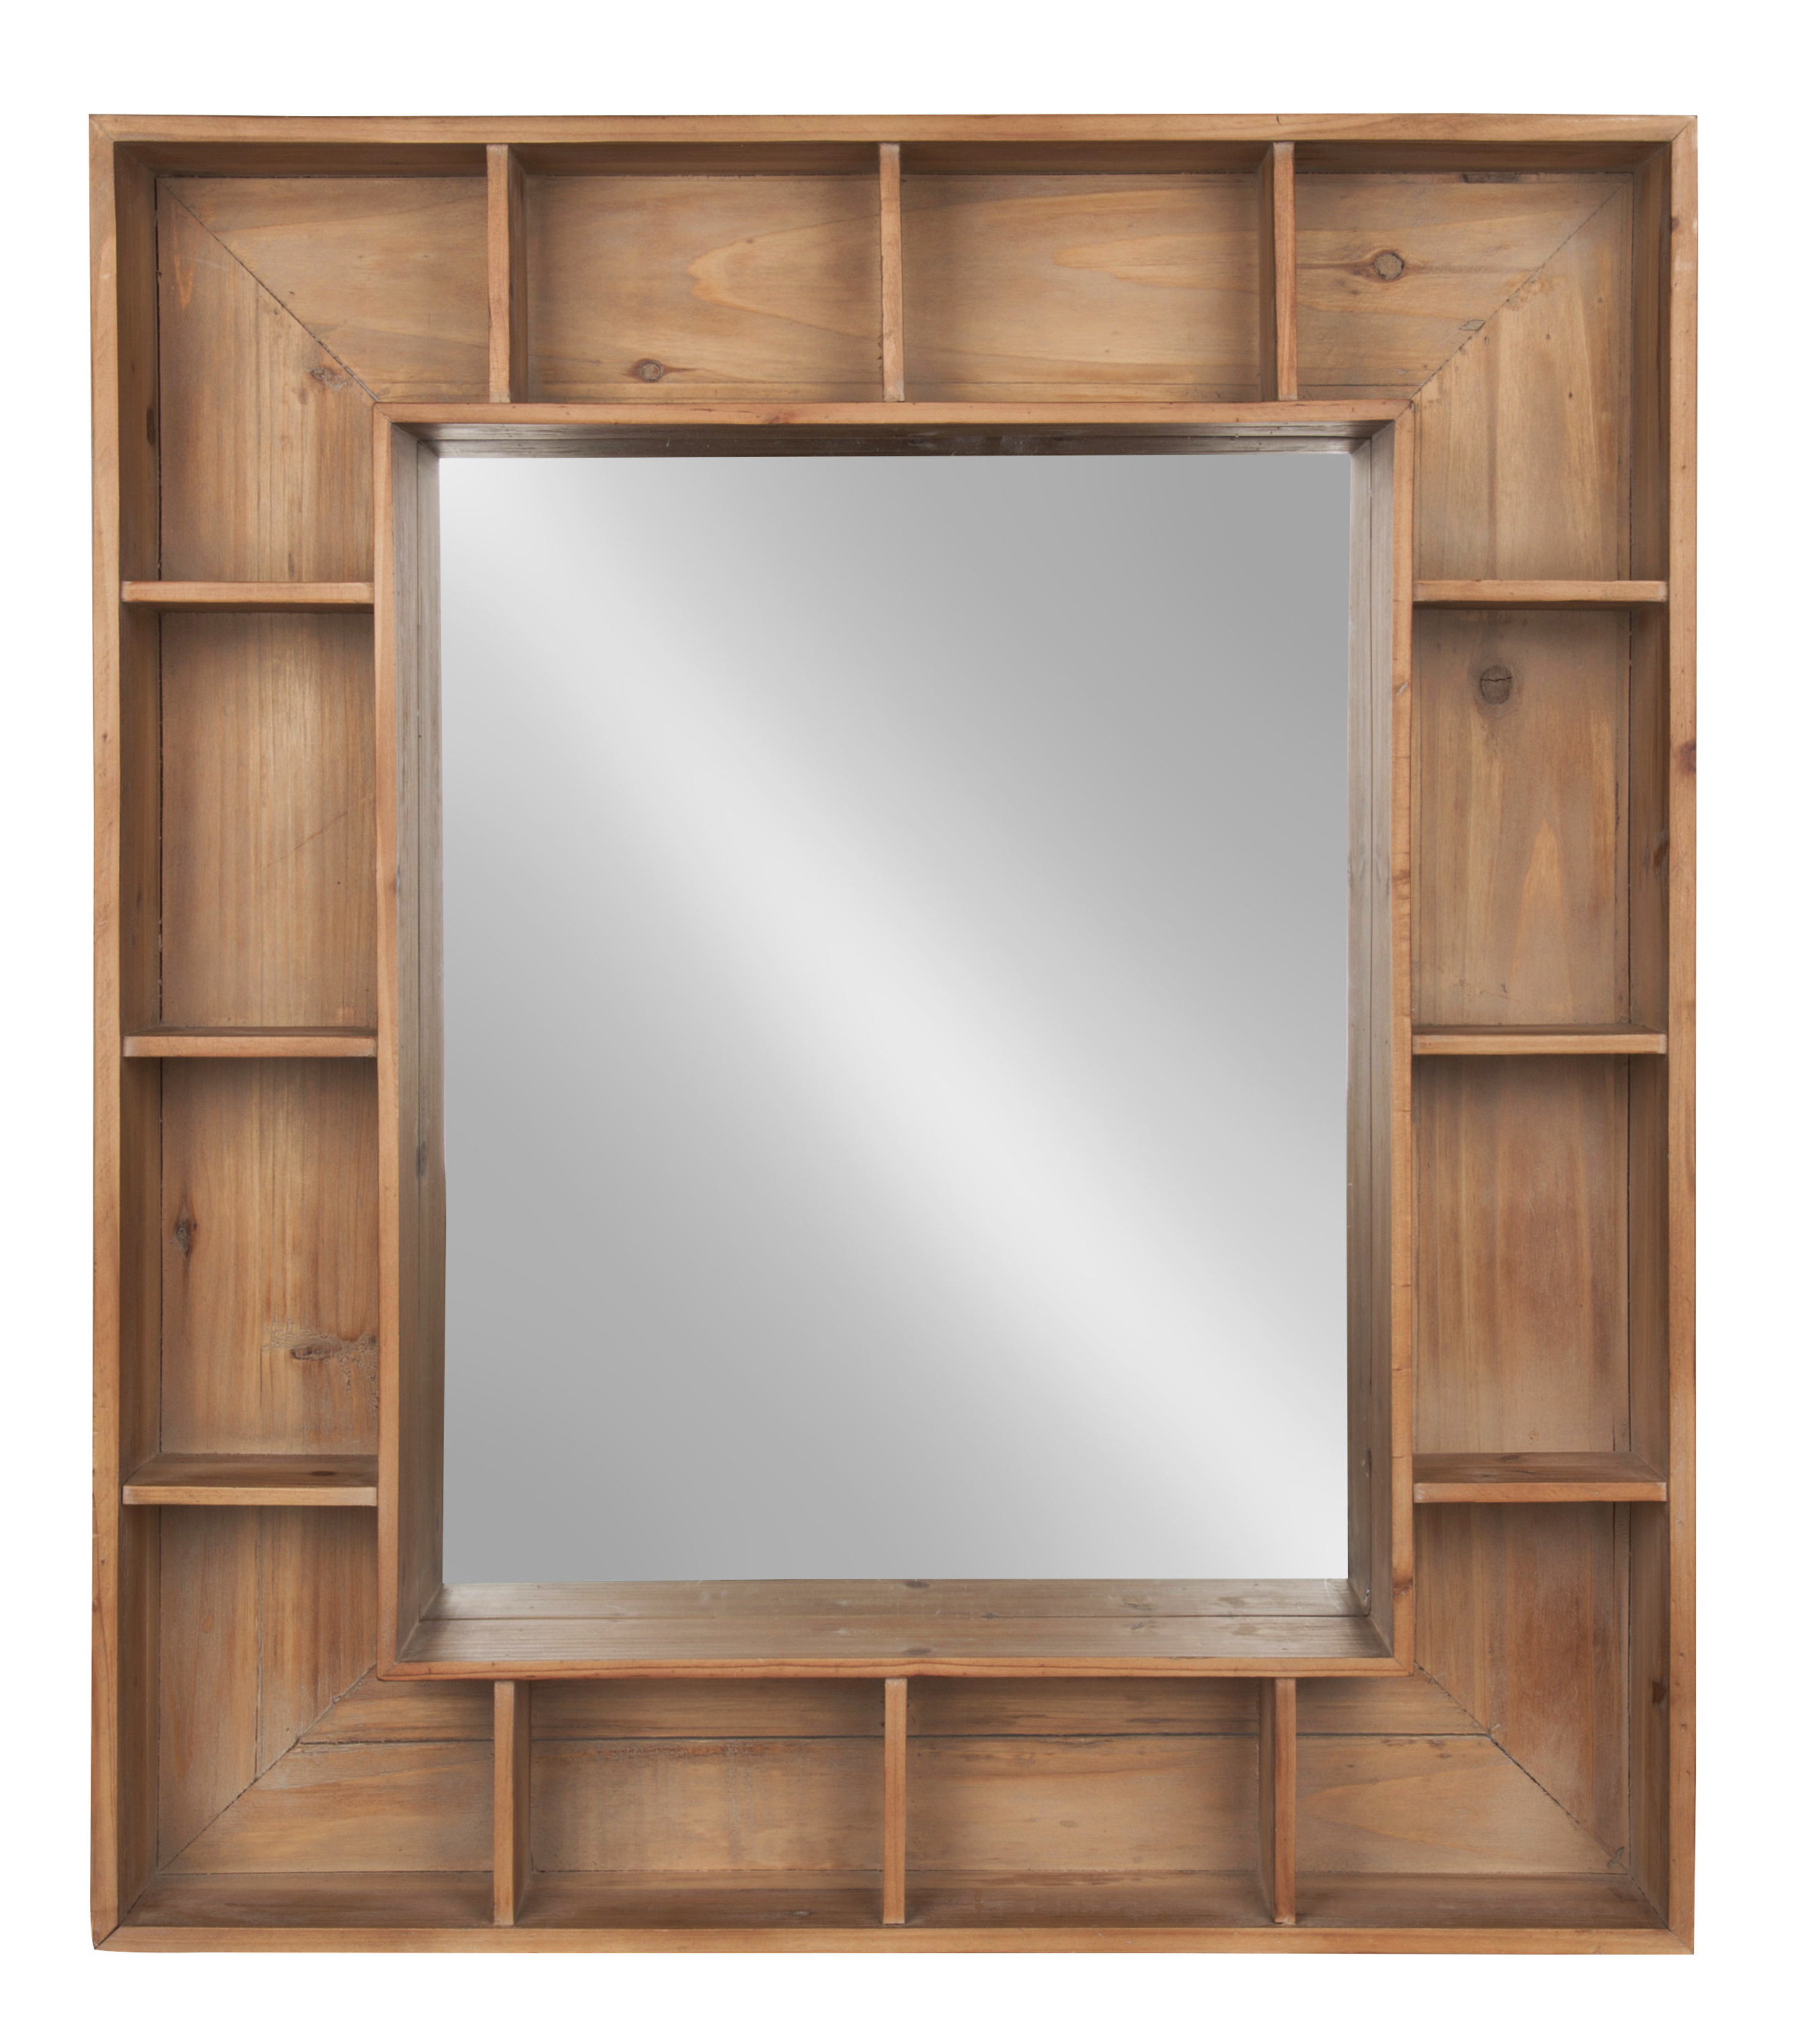 Well Known Swanage Rustic Wood Cubby Framed Wall Storage Accent Mirror Regarding Wood Accent Mirrors (View 13 of 20)